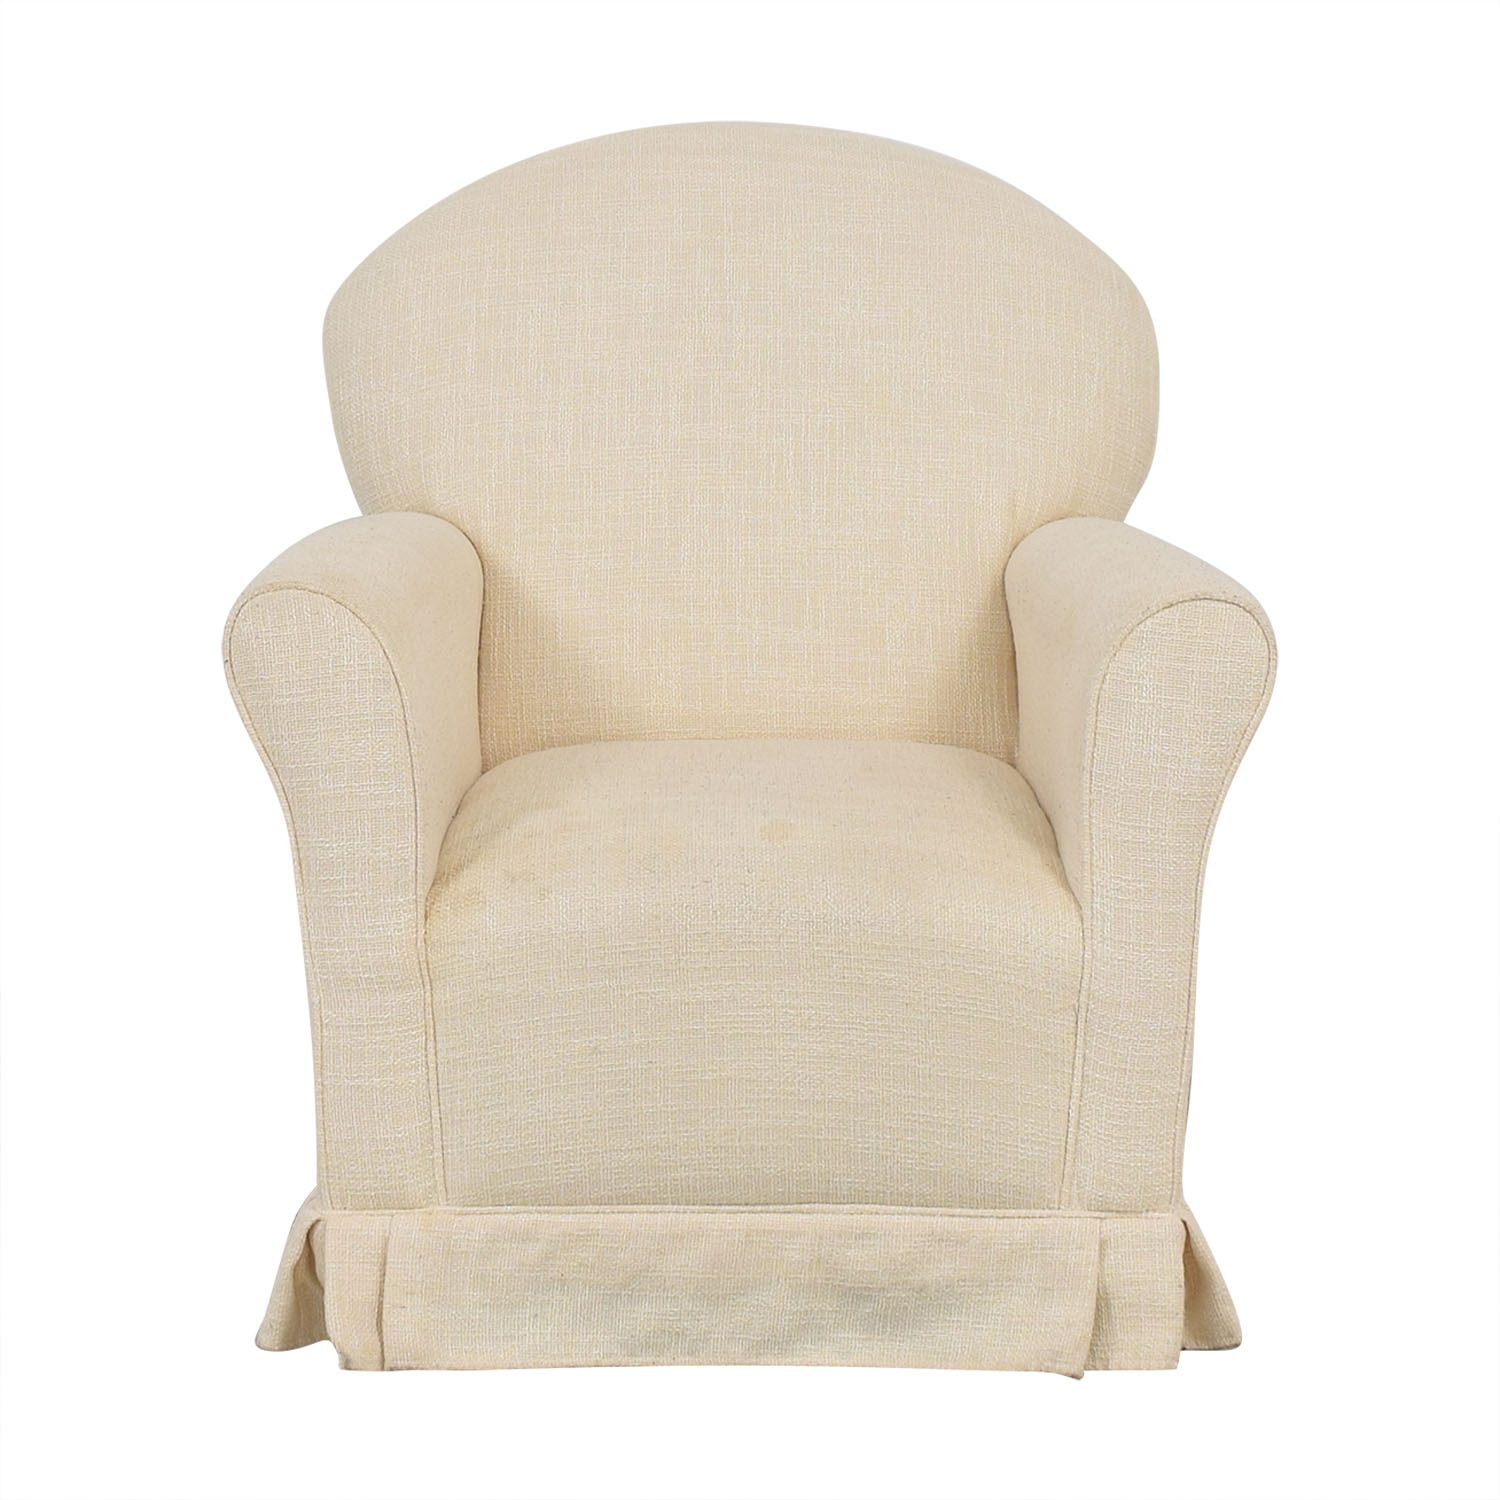 Little Castle Furniture Little Castle Furniture Glider Chair and Ottoman nj